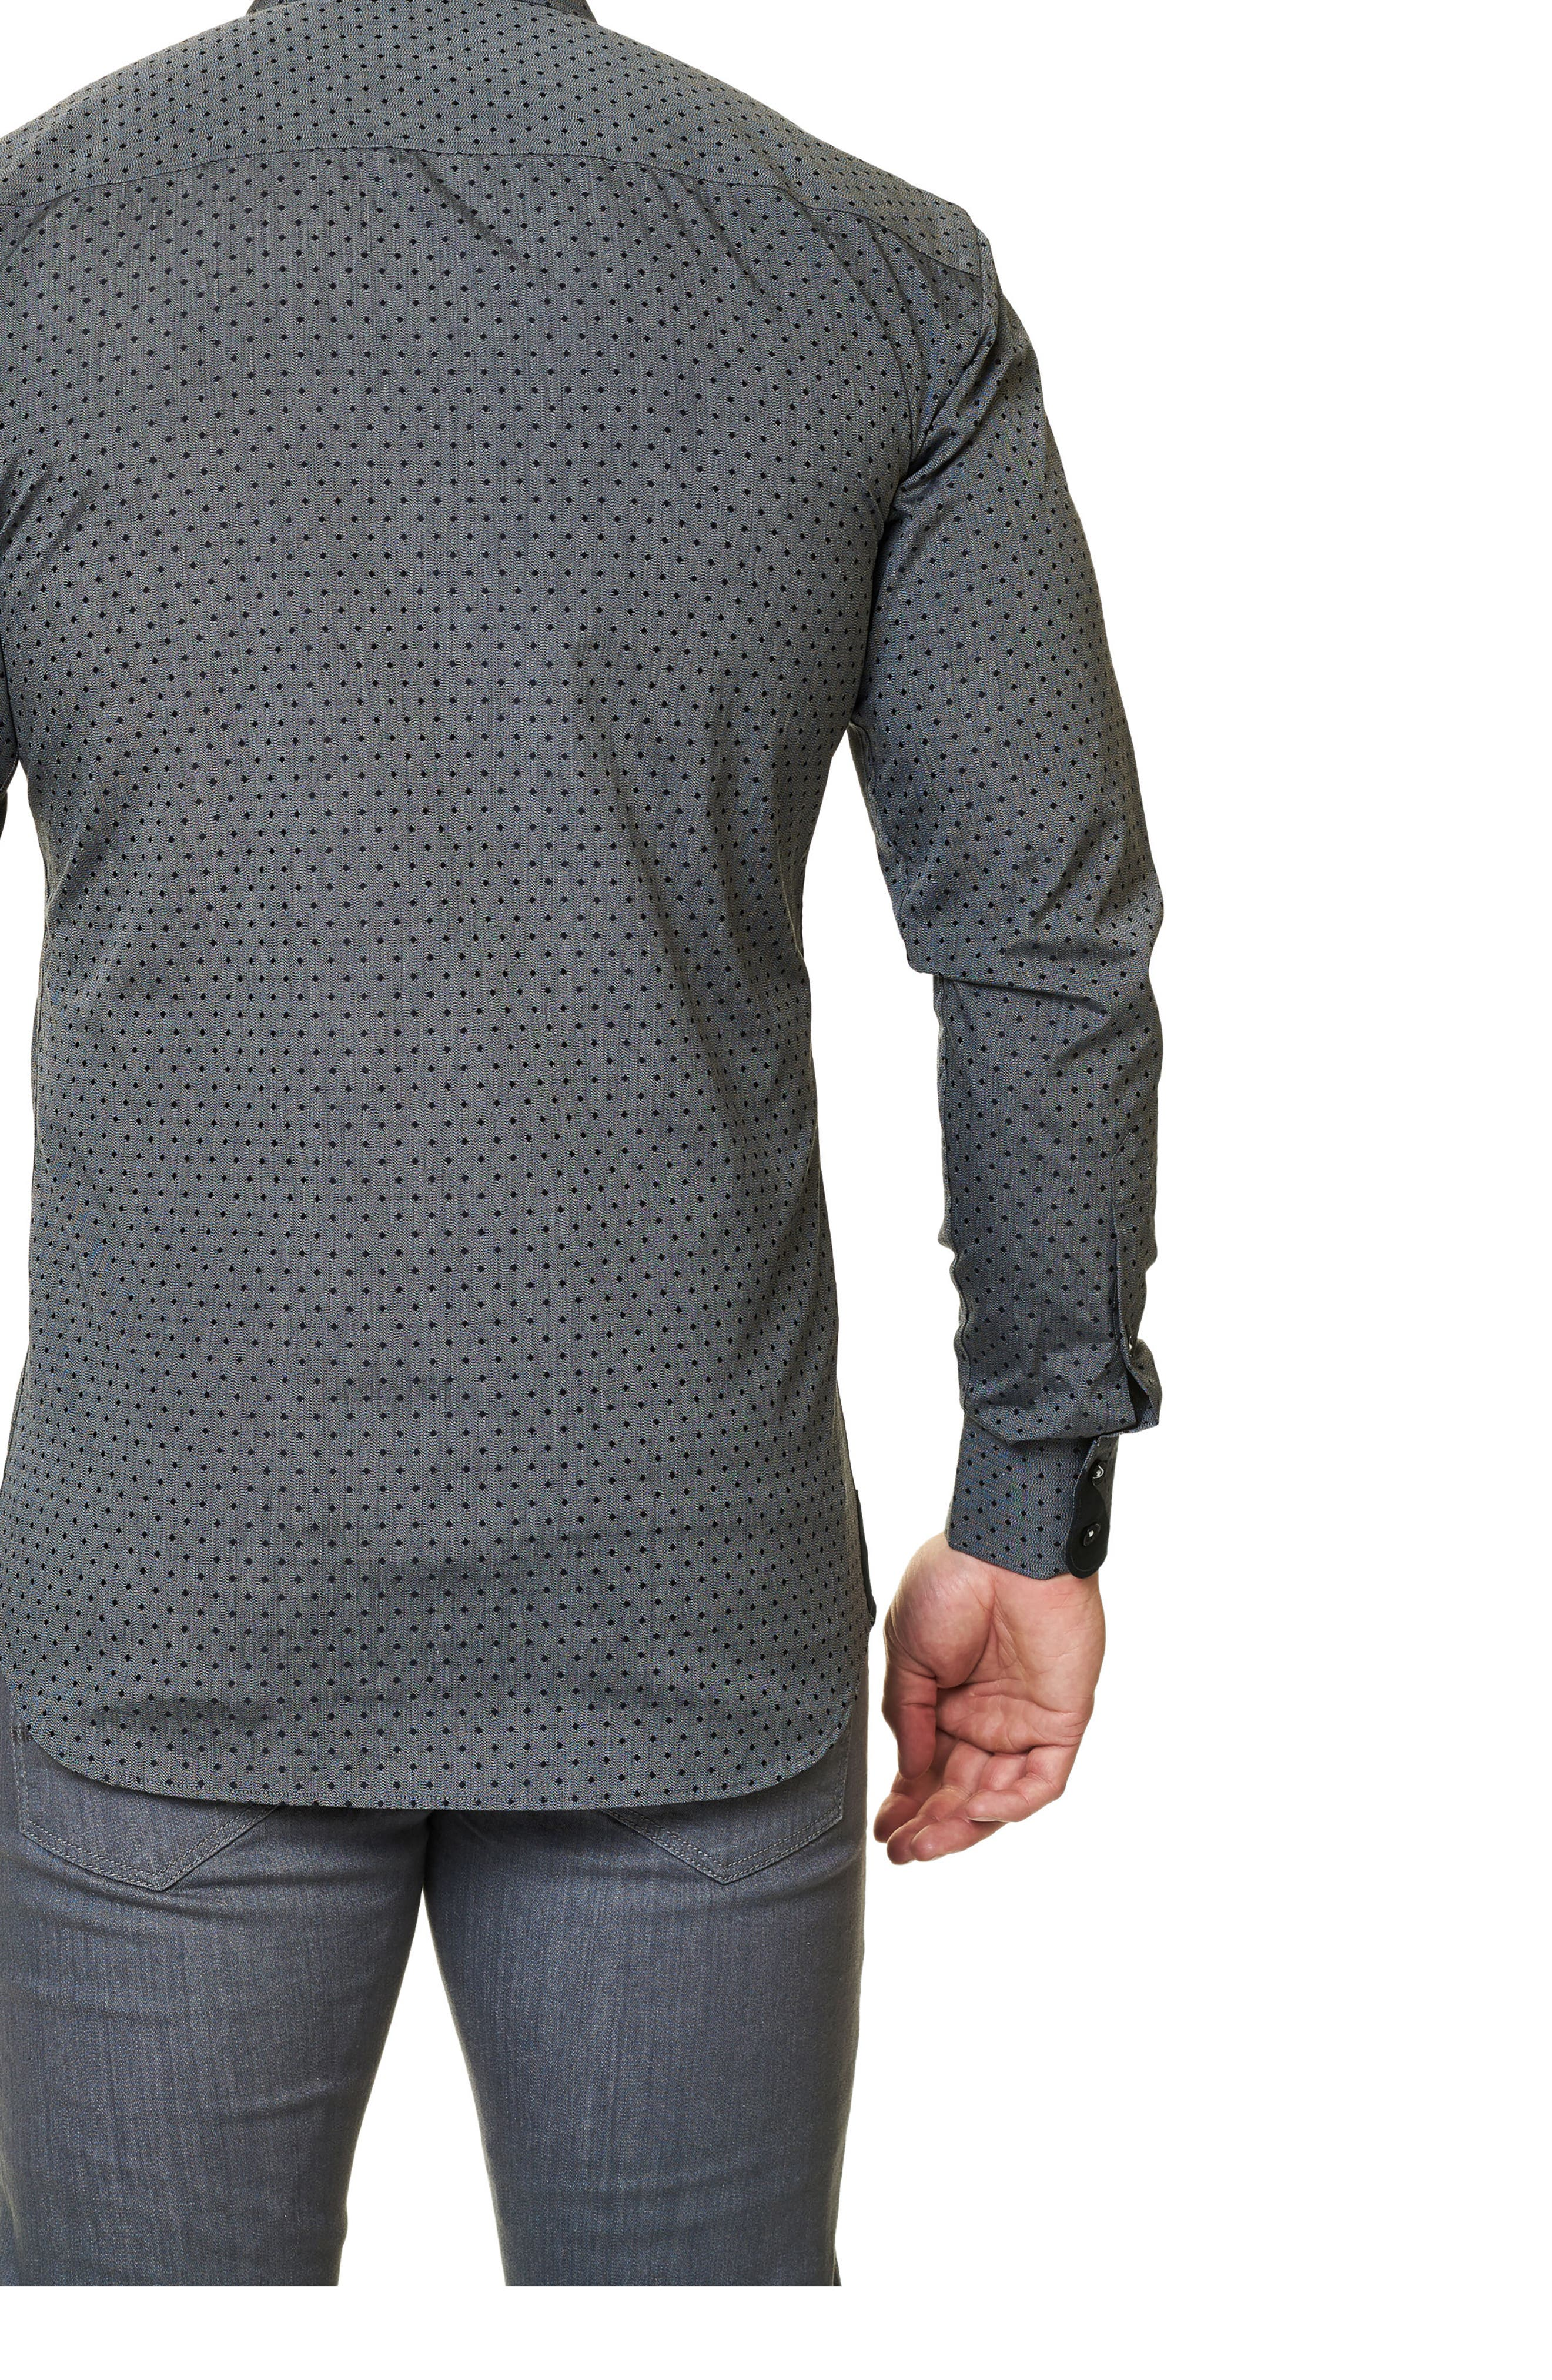 Alternate Image 2  - Maceoo Trim Fit Dot Print Sport Shirt